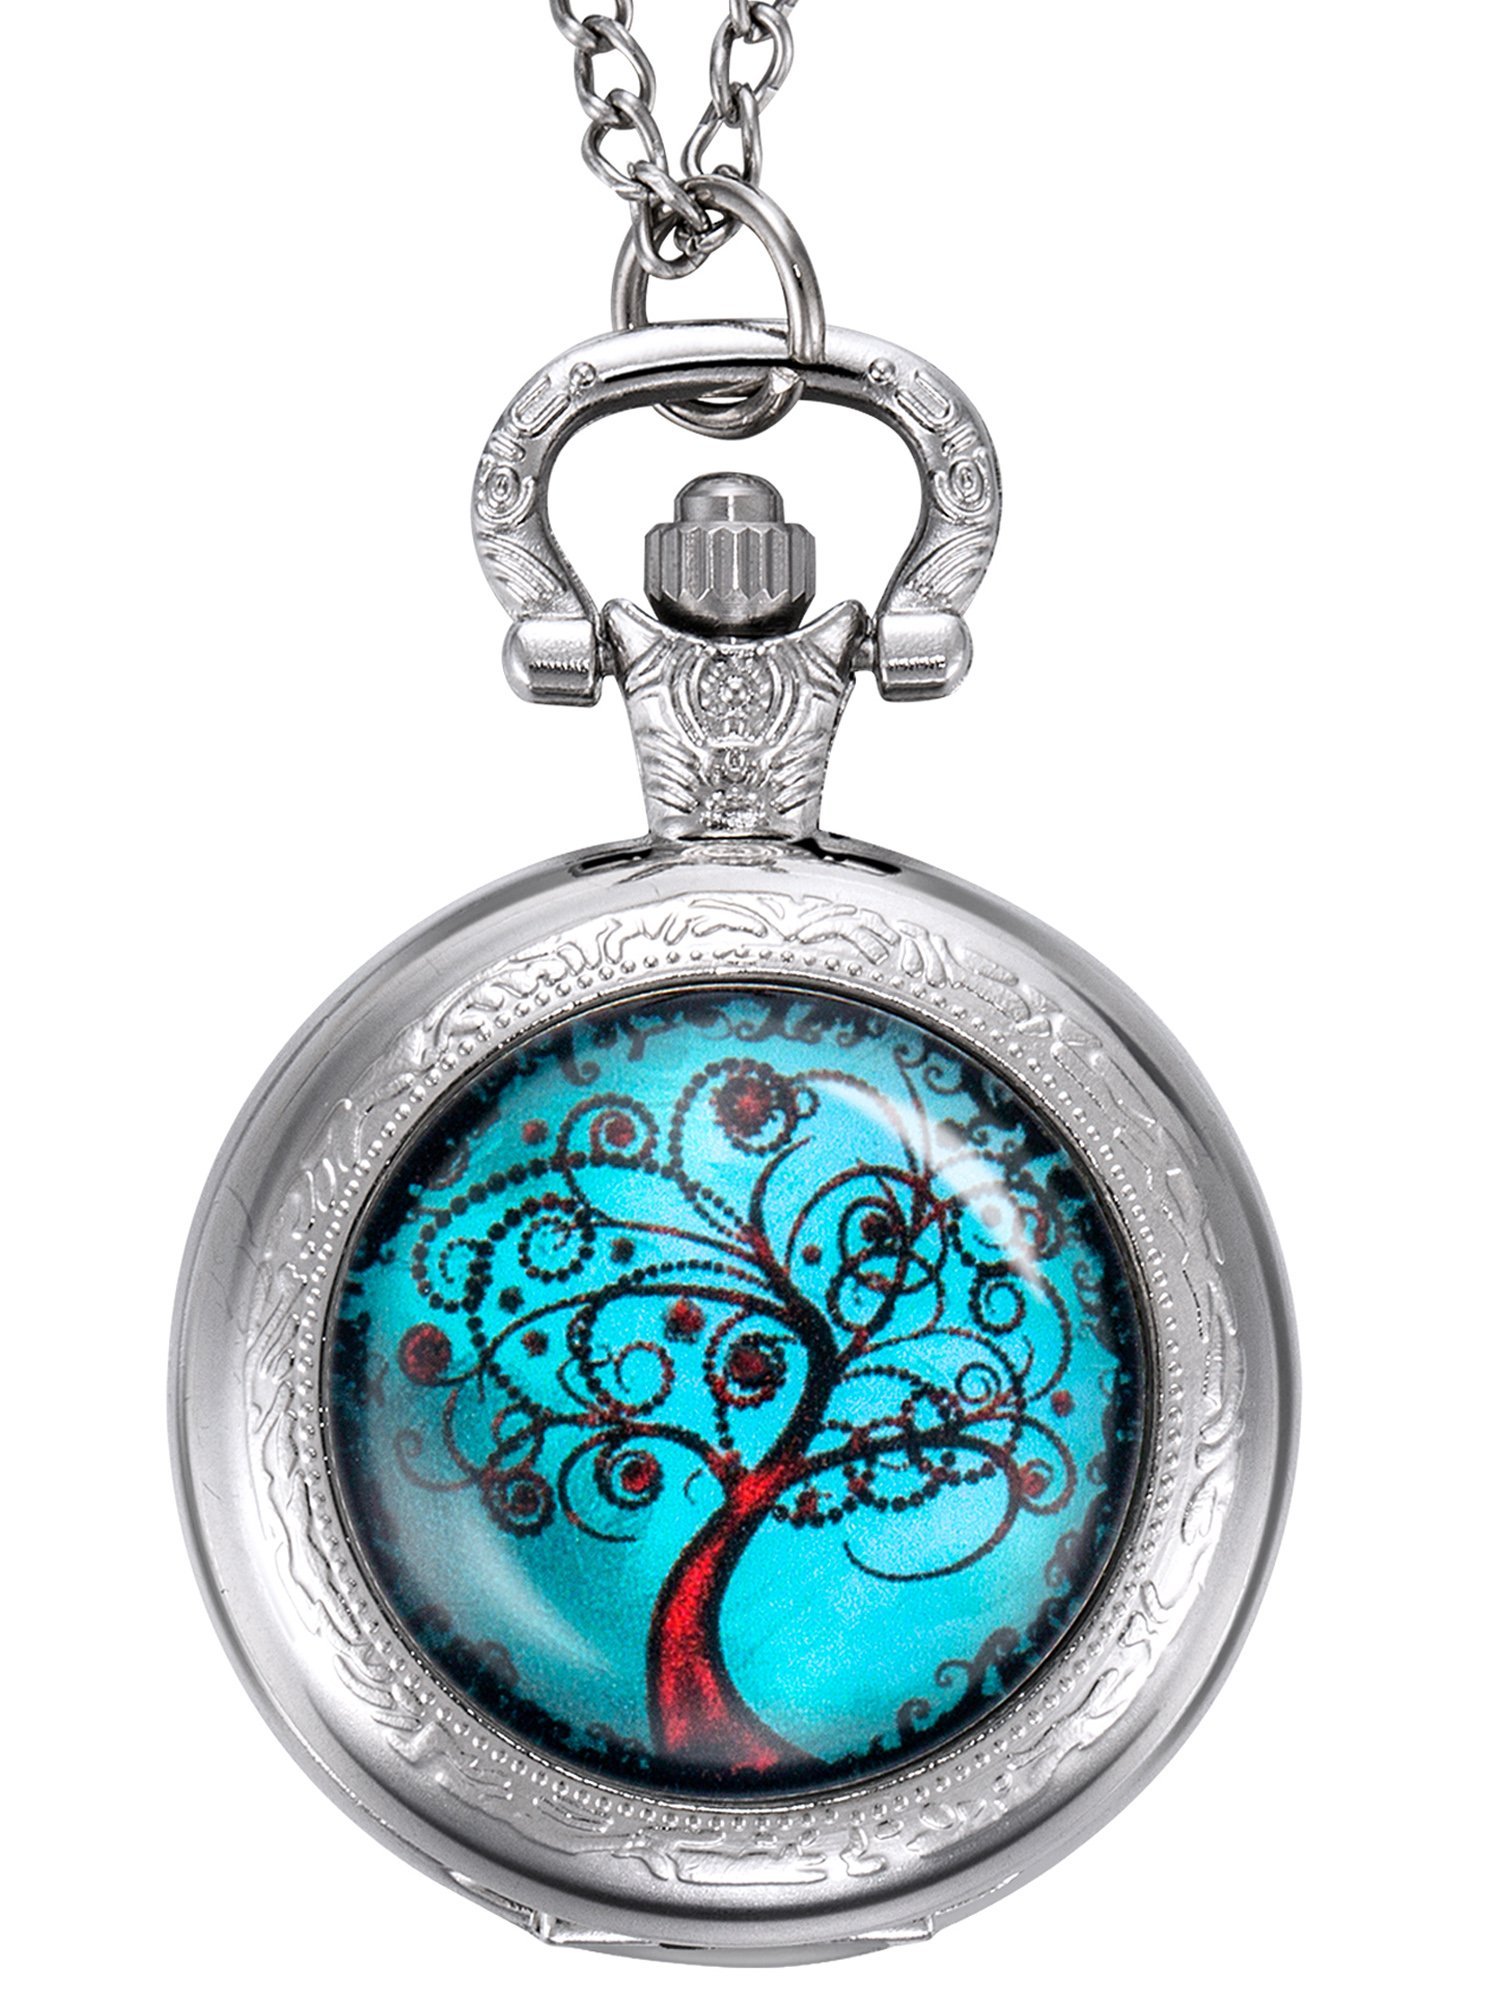 Hicarer Life Tree Pocket Watch, Christmas Gifts for Mother, Bride, Bridesmaids, Wedding, Silver